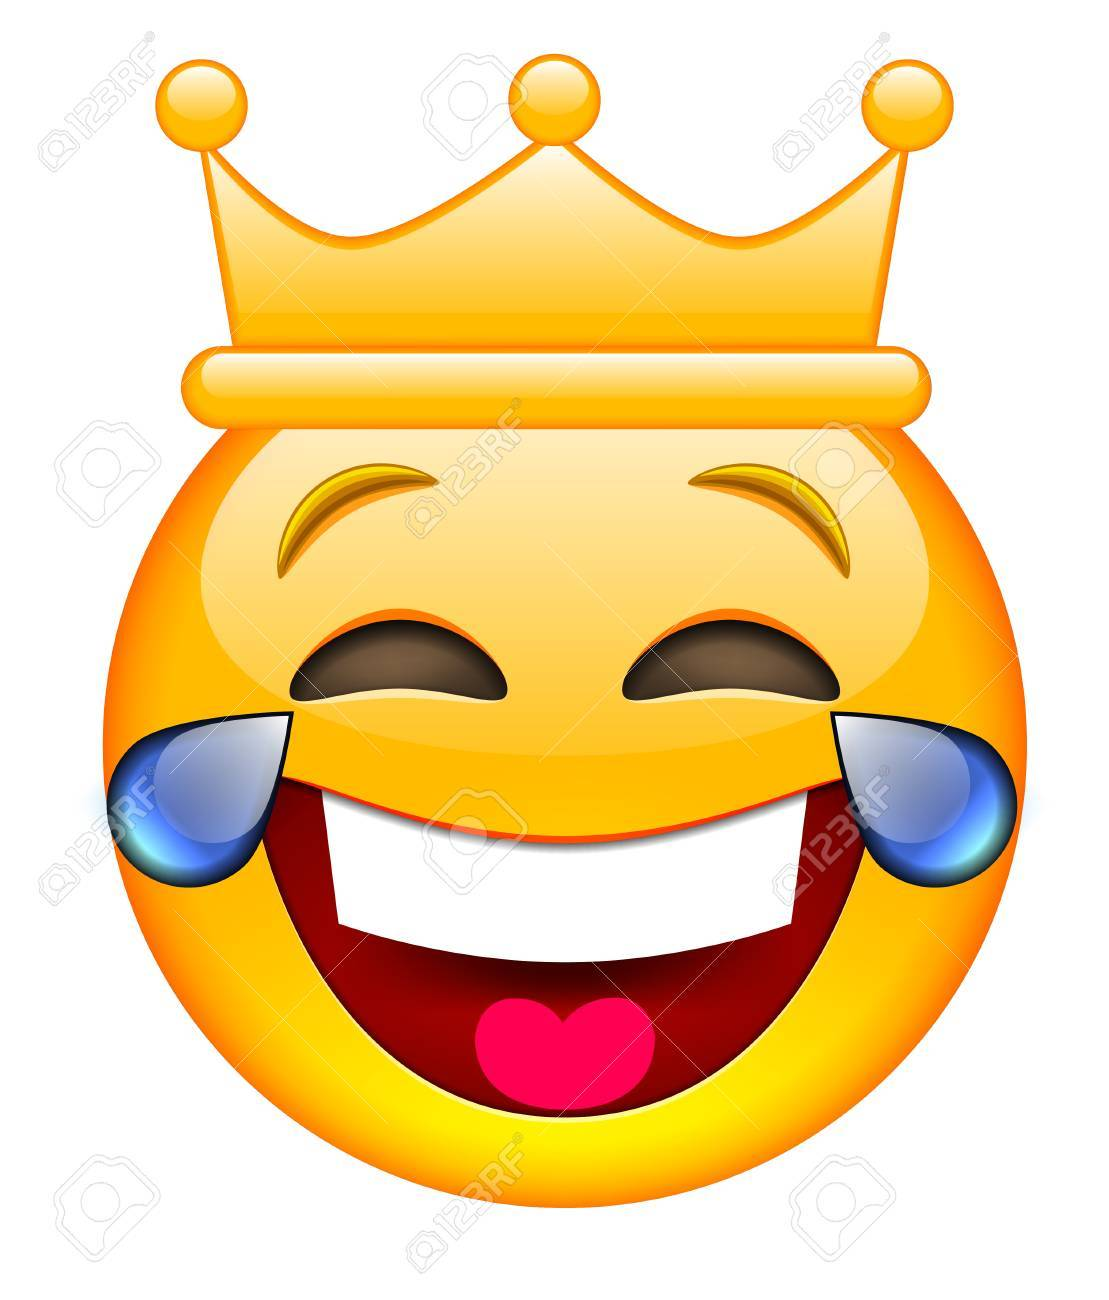 1109x1300 Laughing Face With Crown. Laughing Emoji With Crown. Laughing